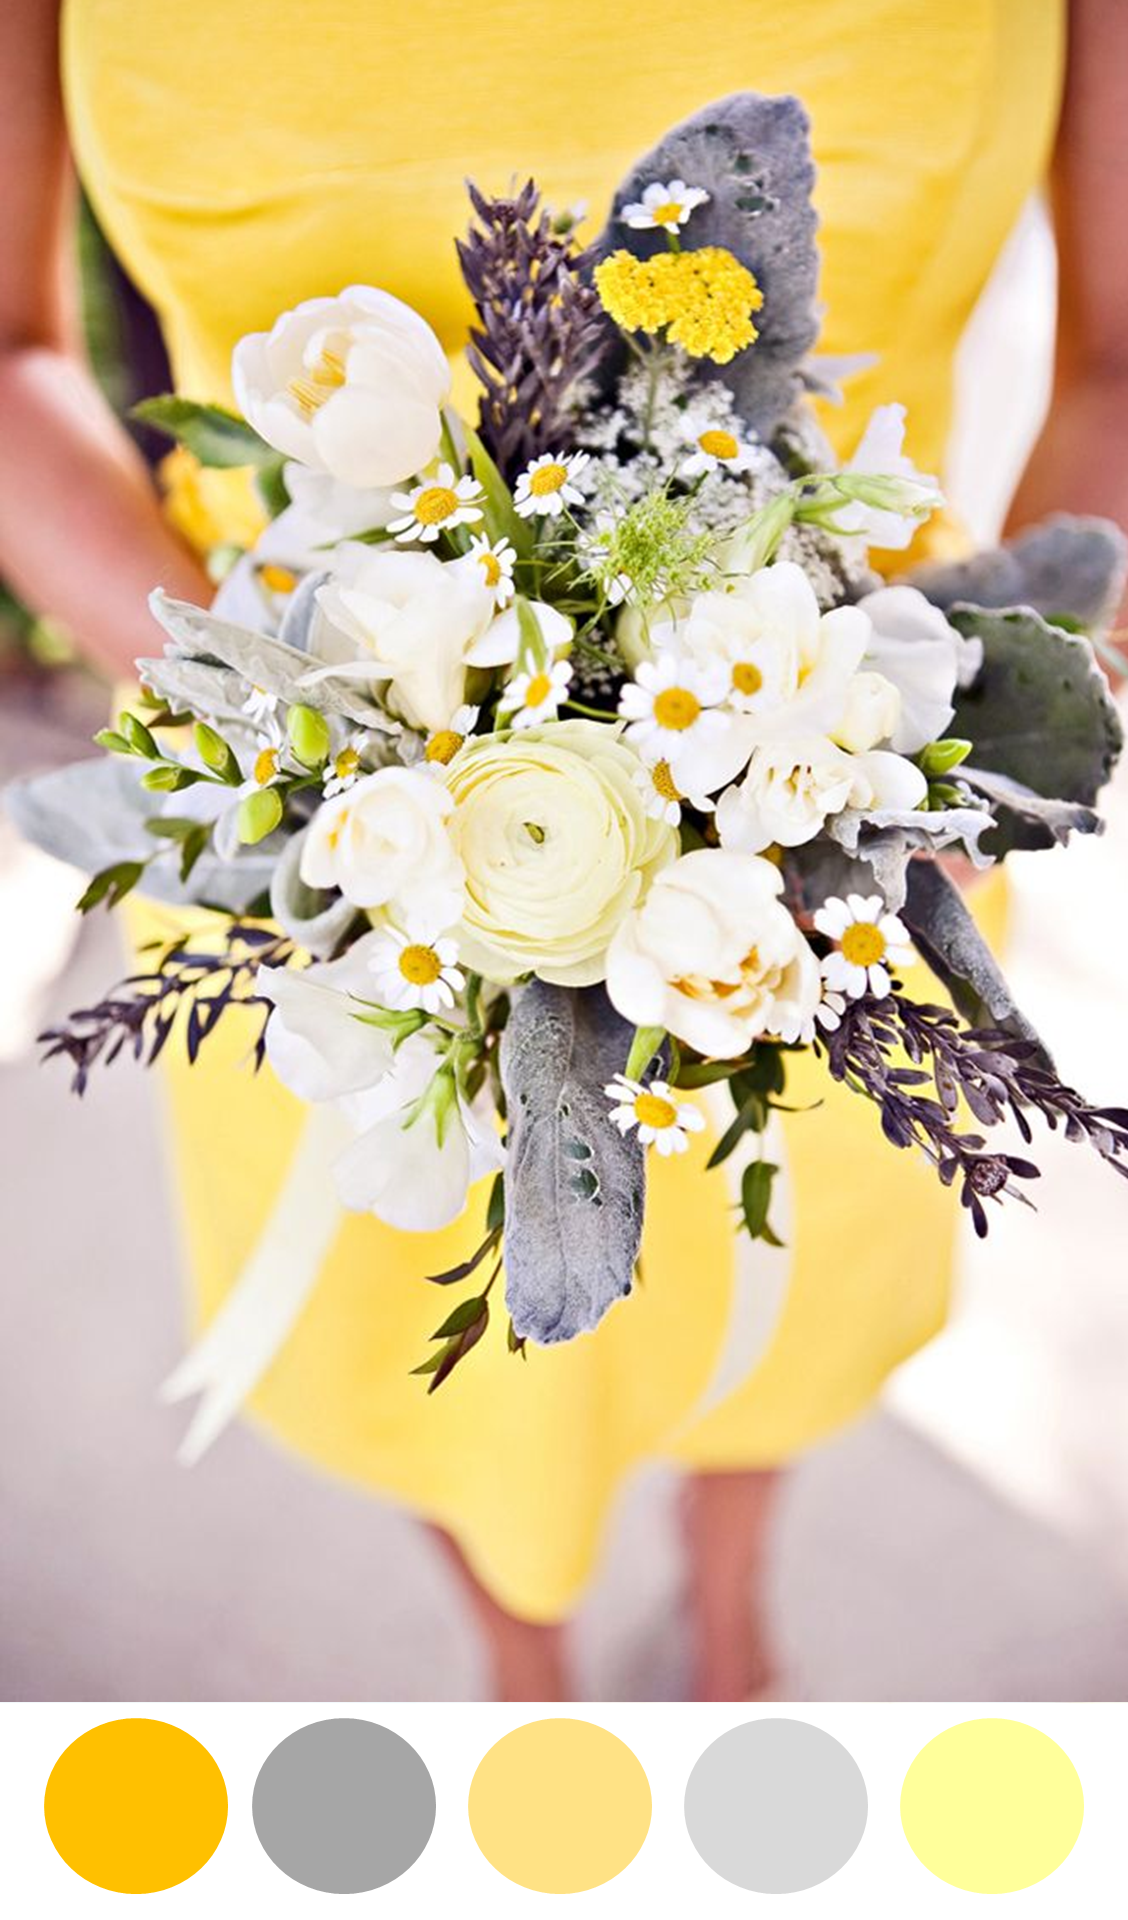 Wedding decorations yellow and gray   Colorful Bouquets for Your Wedding Day  Wedding Ideas